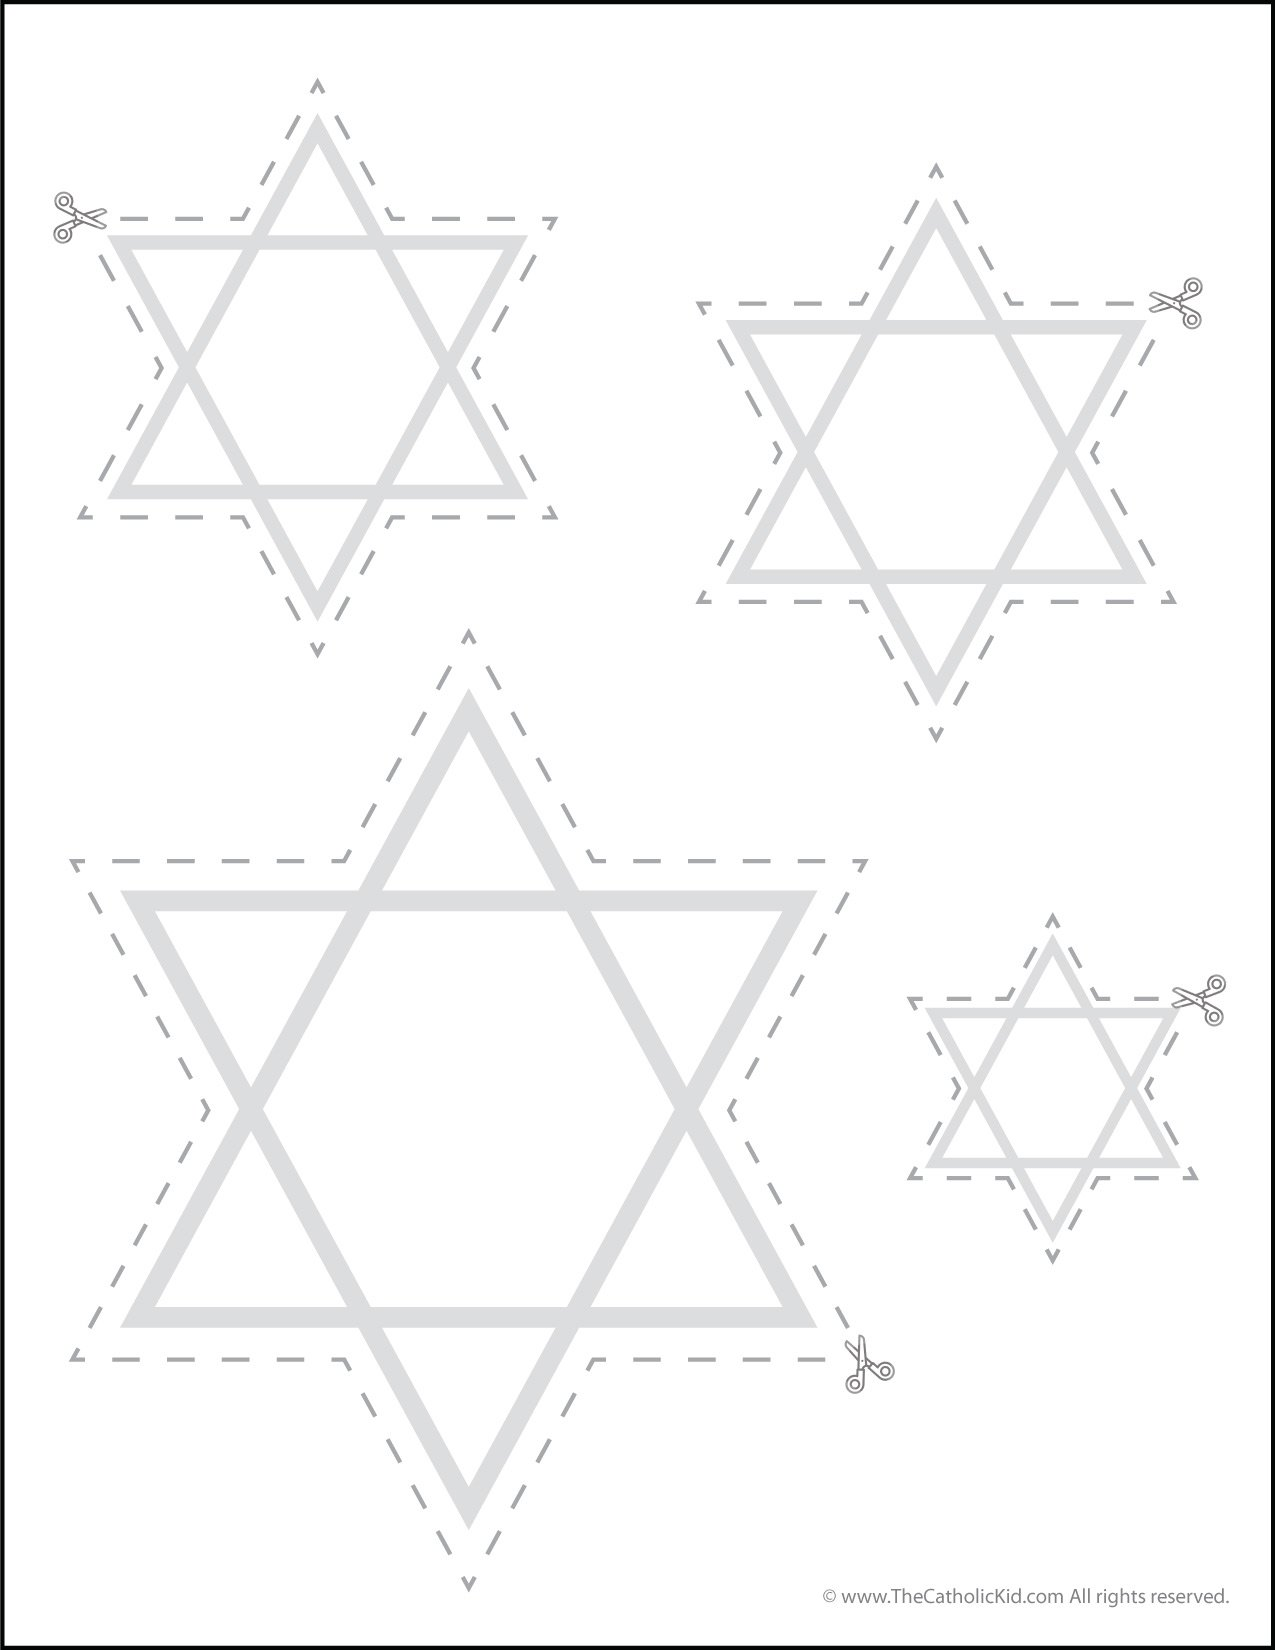 Catholic Scissor Simple Practice Cutting Worksheet - Star of David